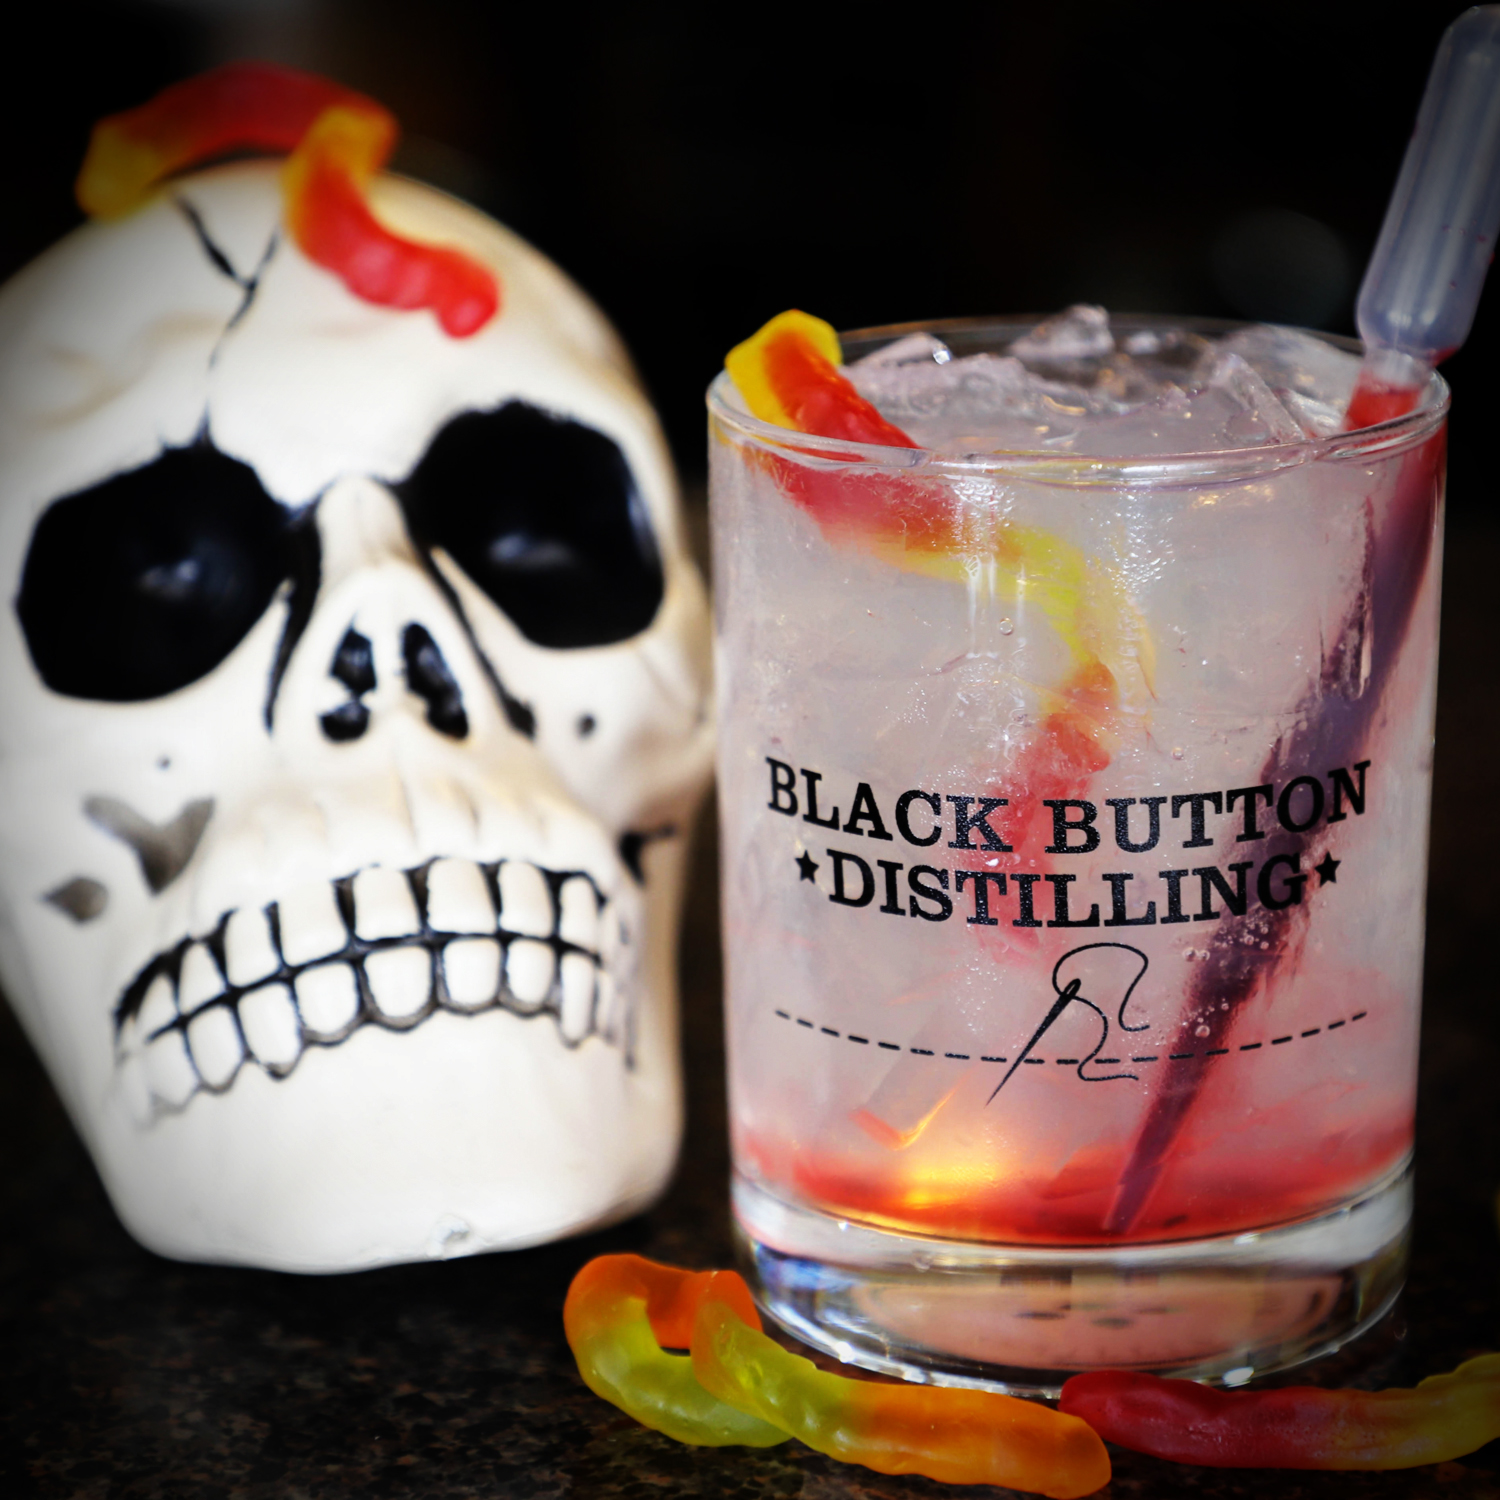 Black Button distilling award winning vodka paired with a vodka cocktail